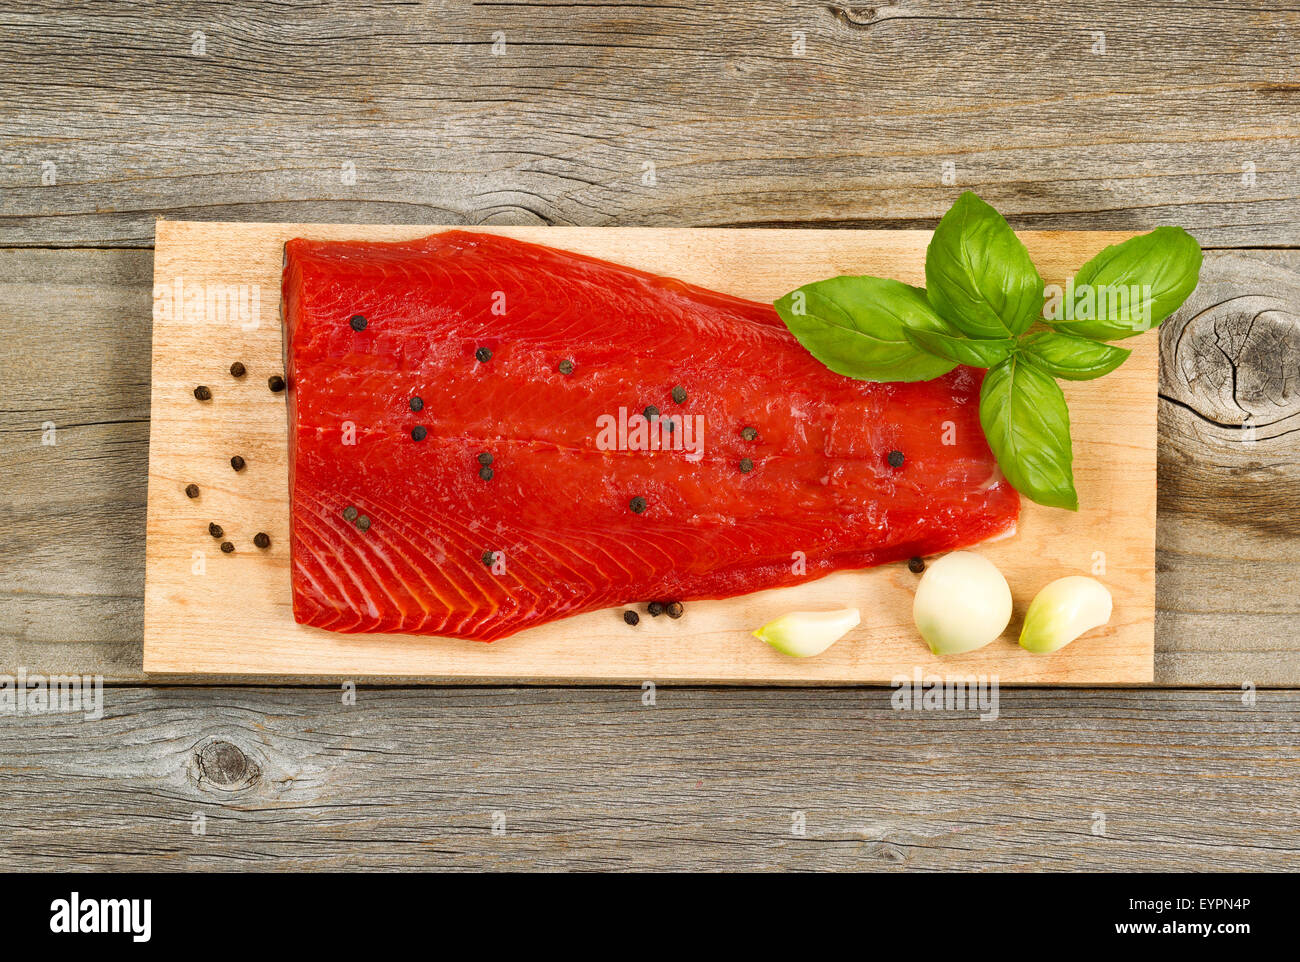 Top view shot of fresh red salmon fillet on cedar cooking board with peppercorn, garlic and basil. Aged wood underneath. - Stock Image